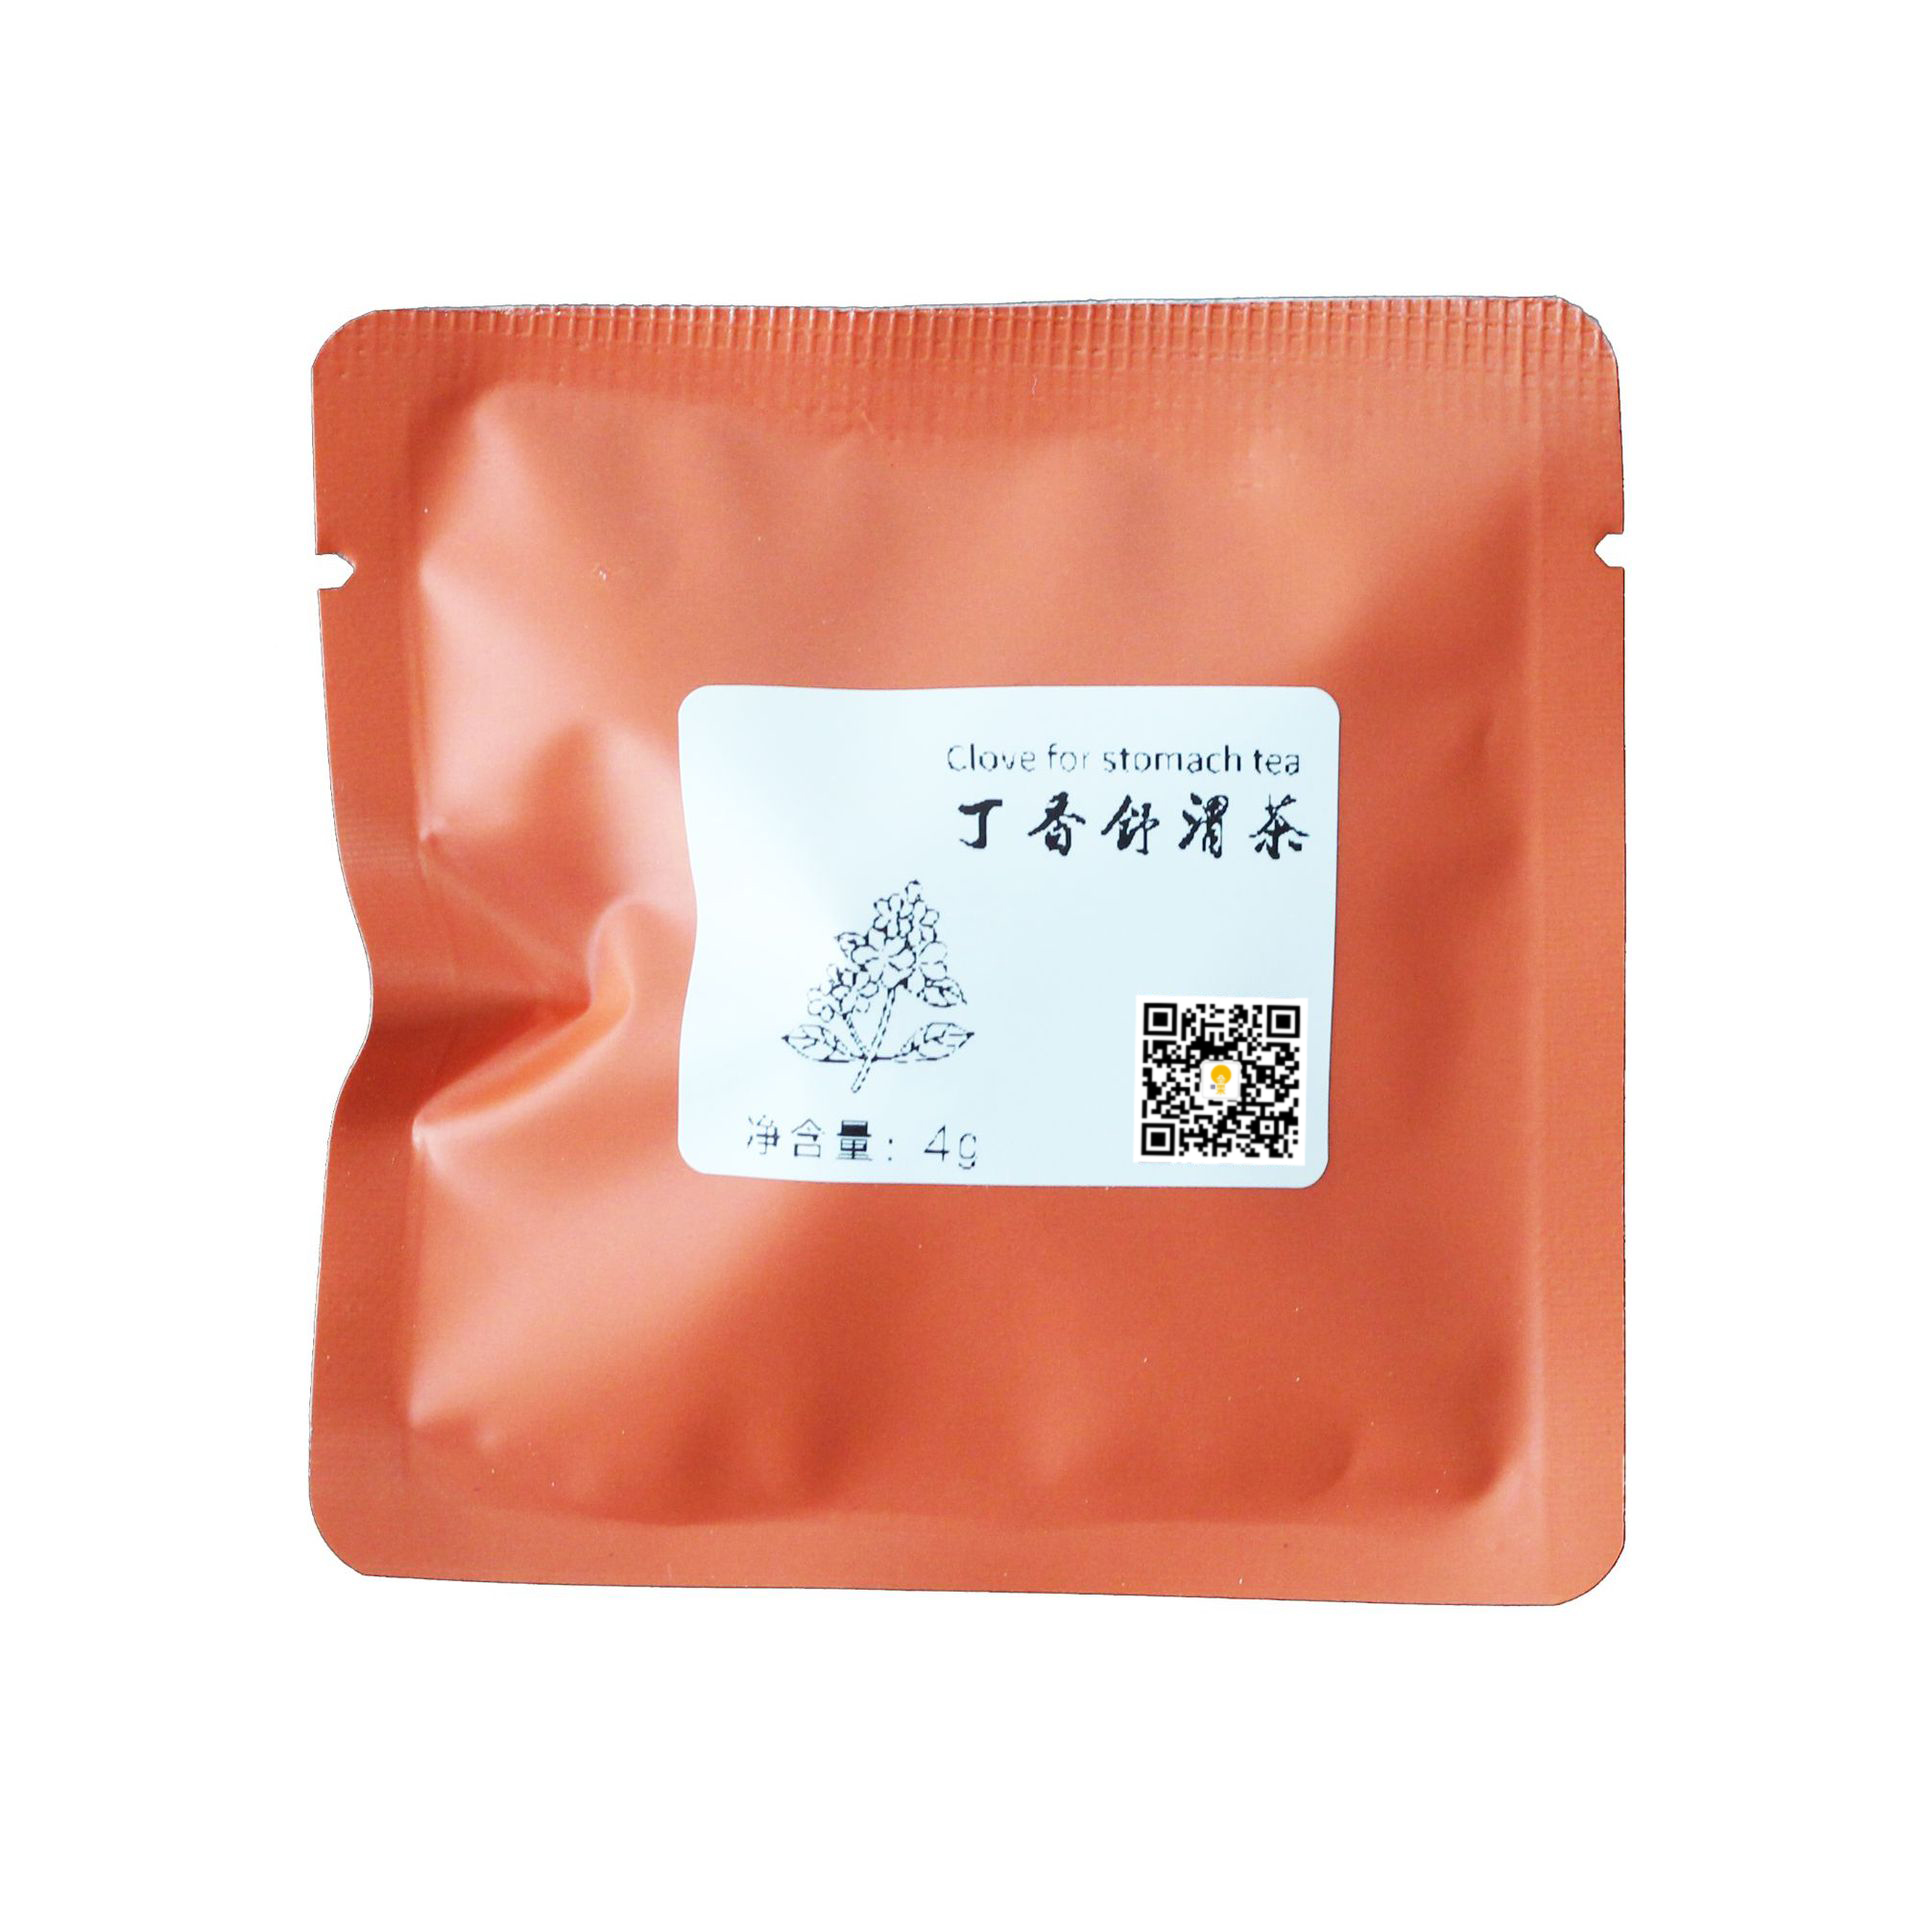 100% Natural Pure Herbs 0 Additives Dried Flowers Cloves Ginger Red Dates Health Tea Bags Protect the Stomach and Fresh Breath - 4uTea   4uTea.com